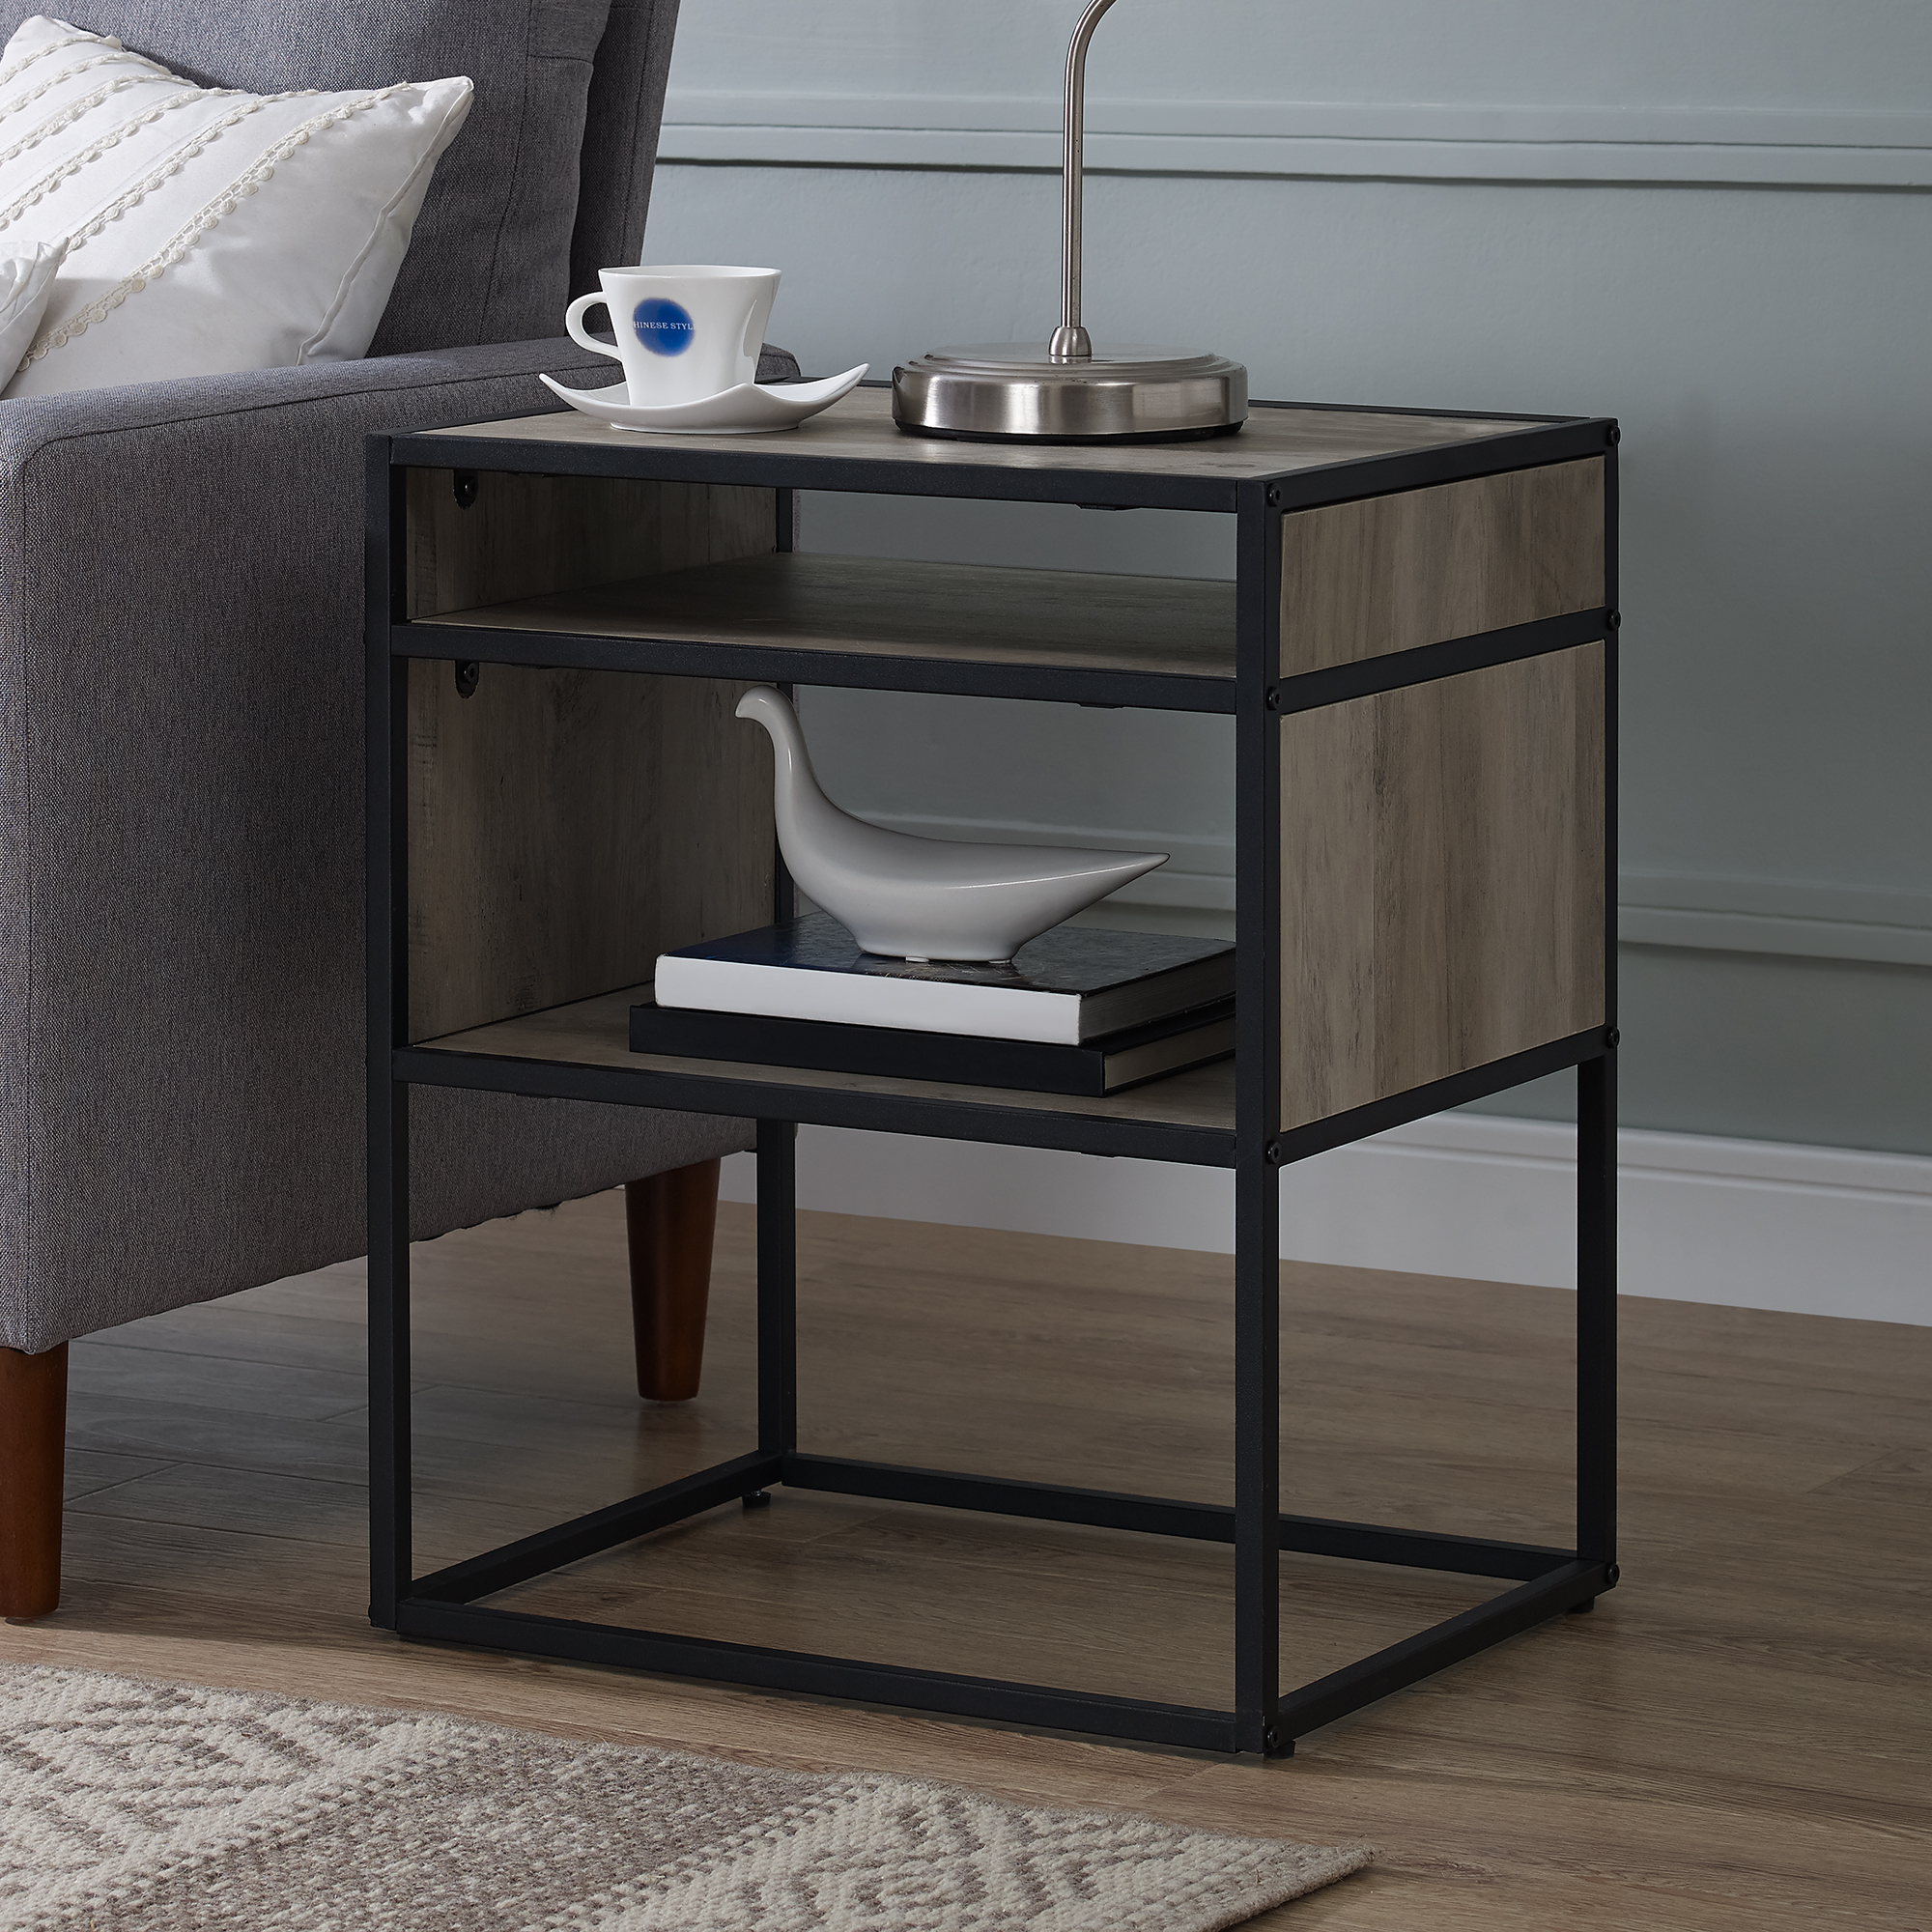 Manor Park Industrial Modern Wood and Metal End Table - Grey Wash